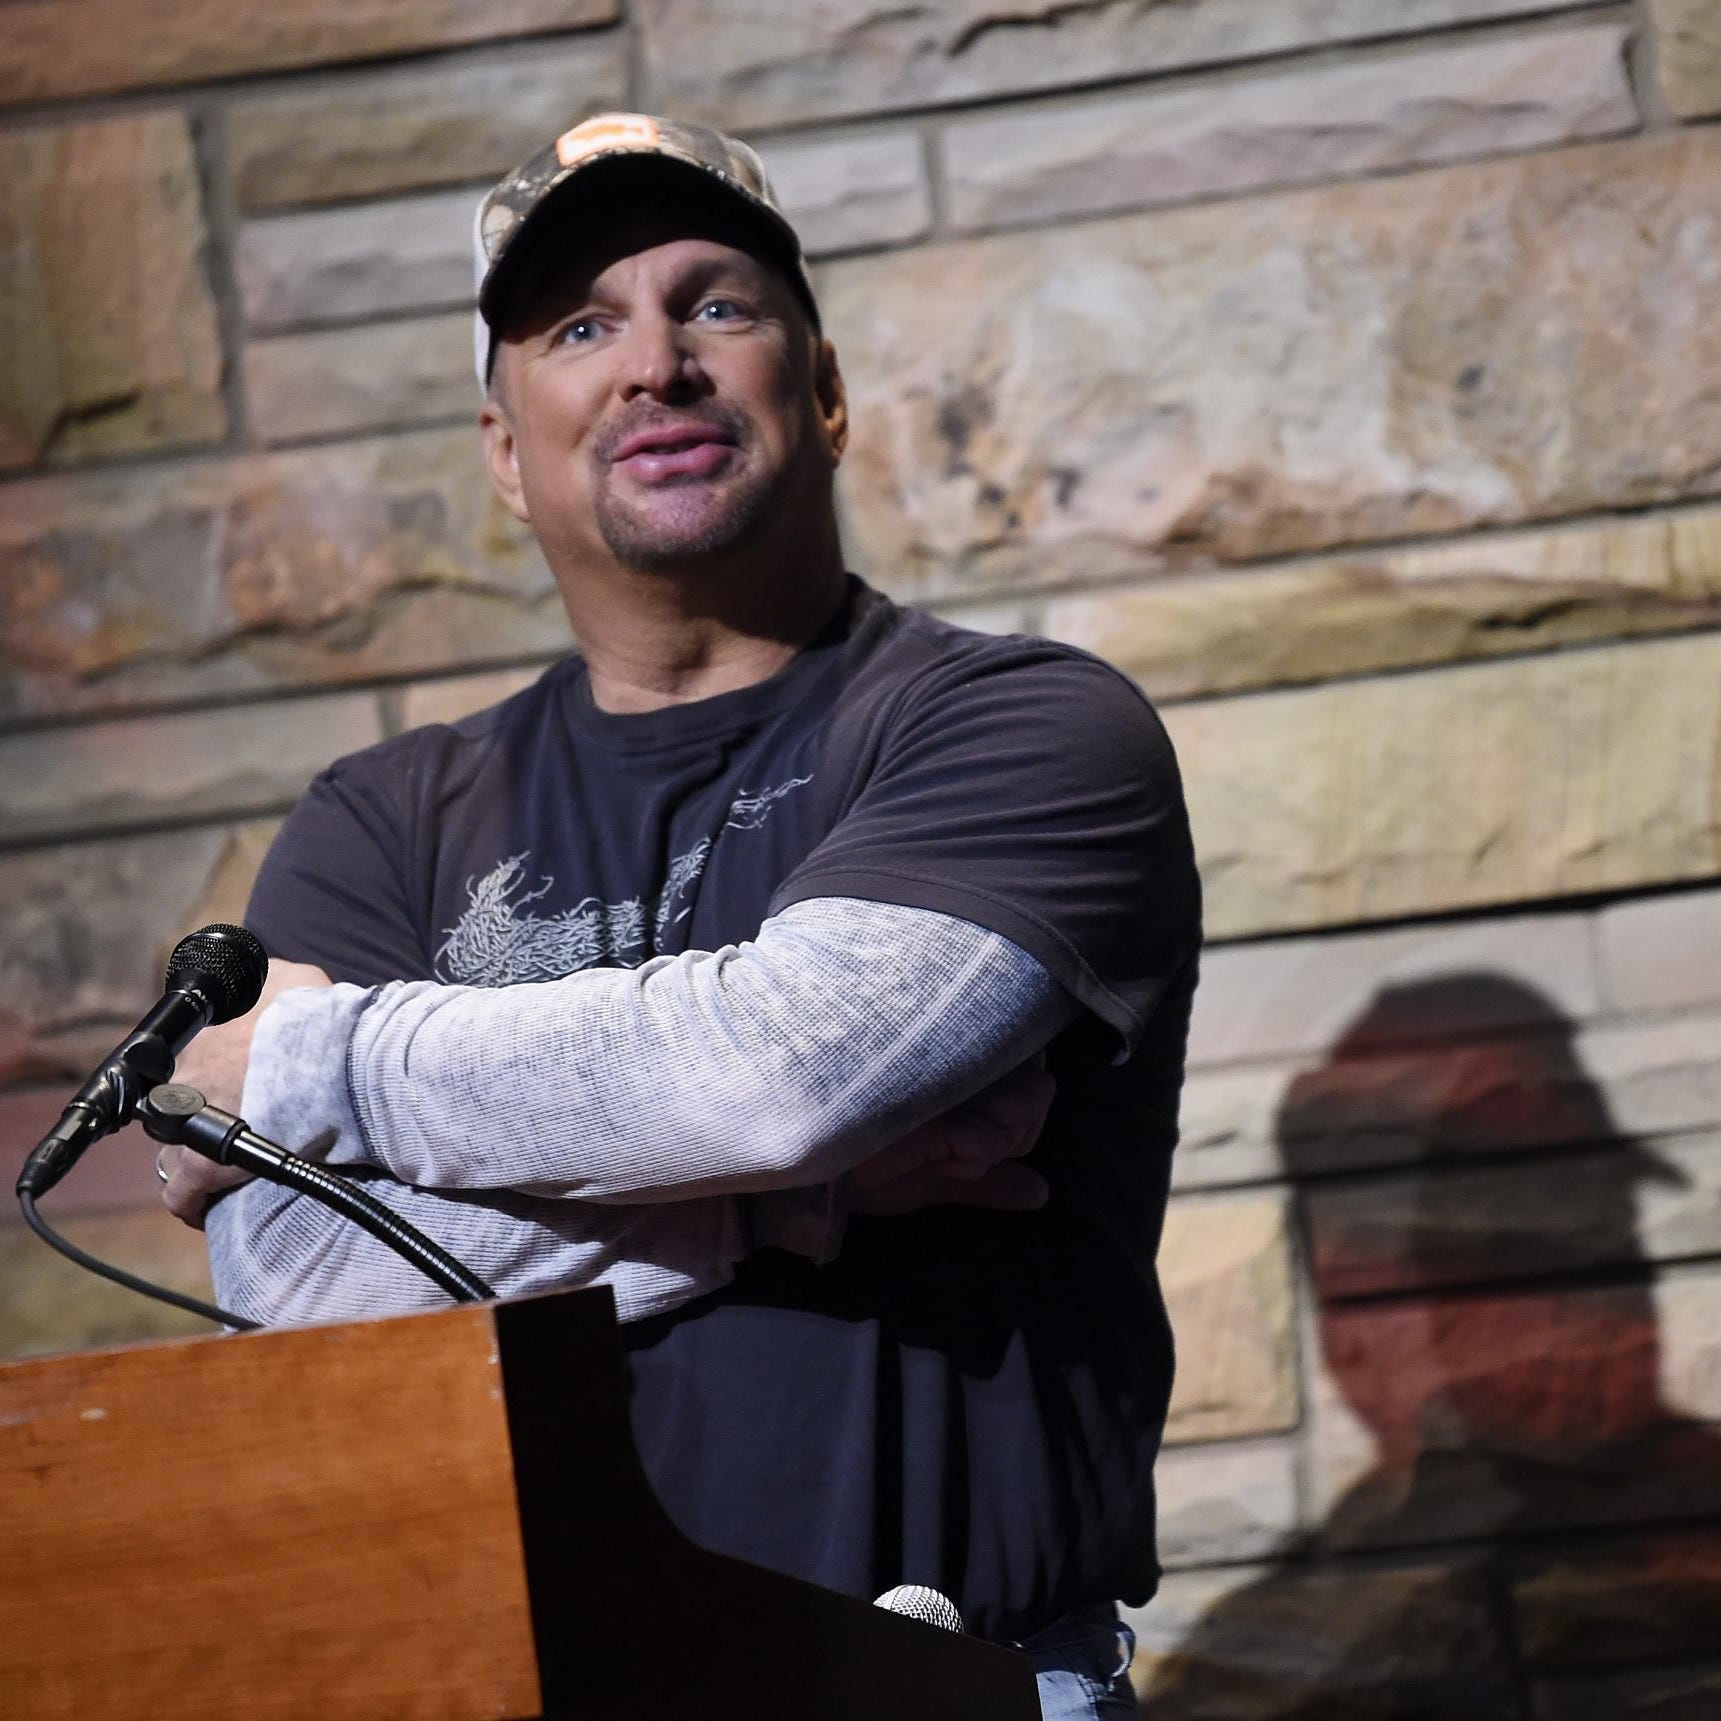 Garth Brooks at Notre Dame Stadium: What you need to know